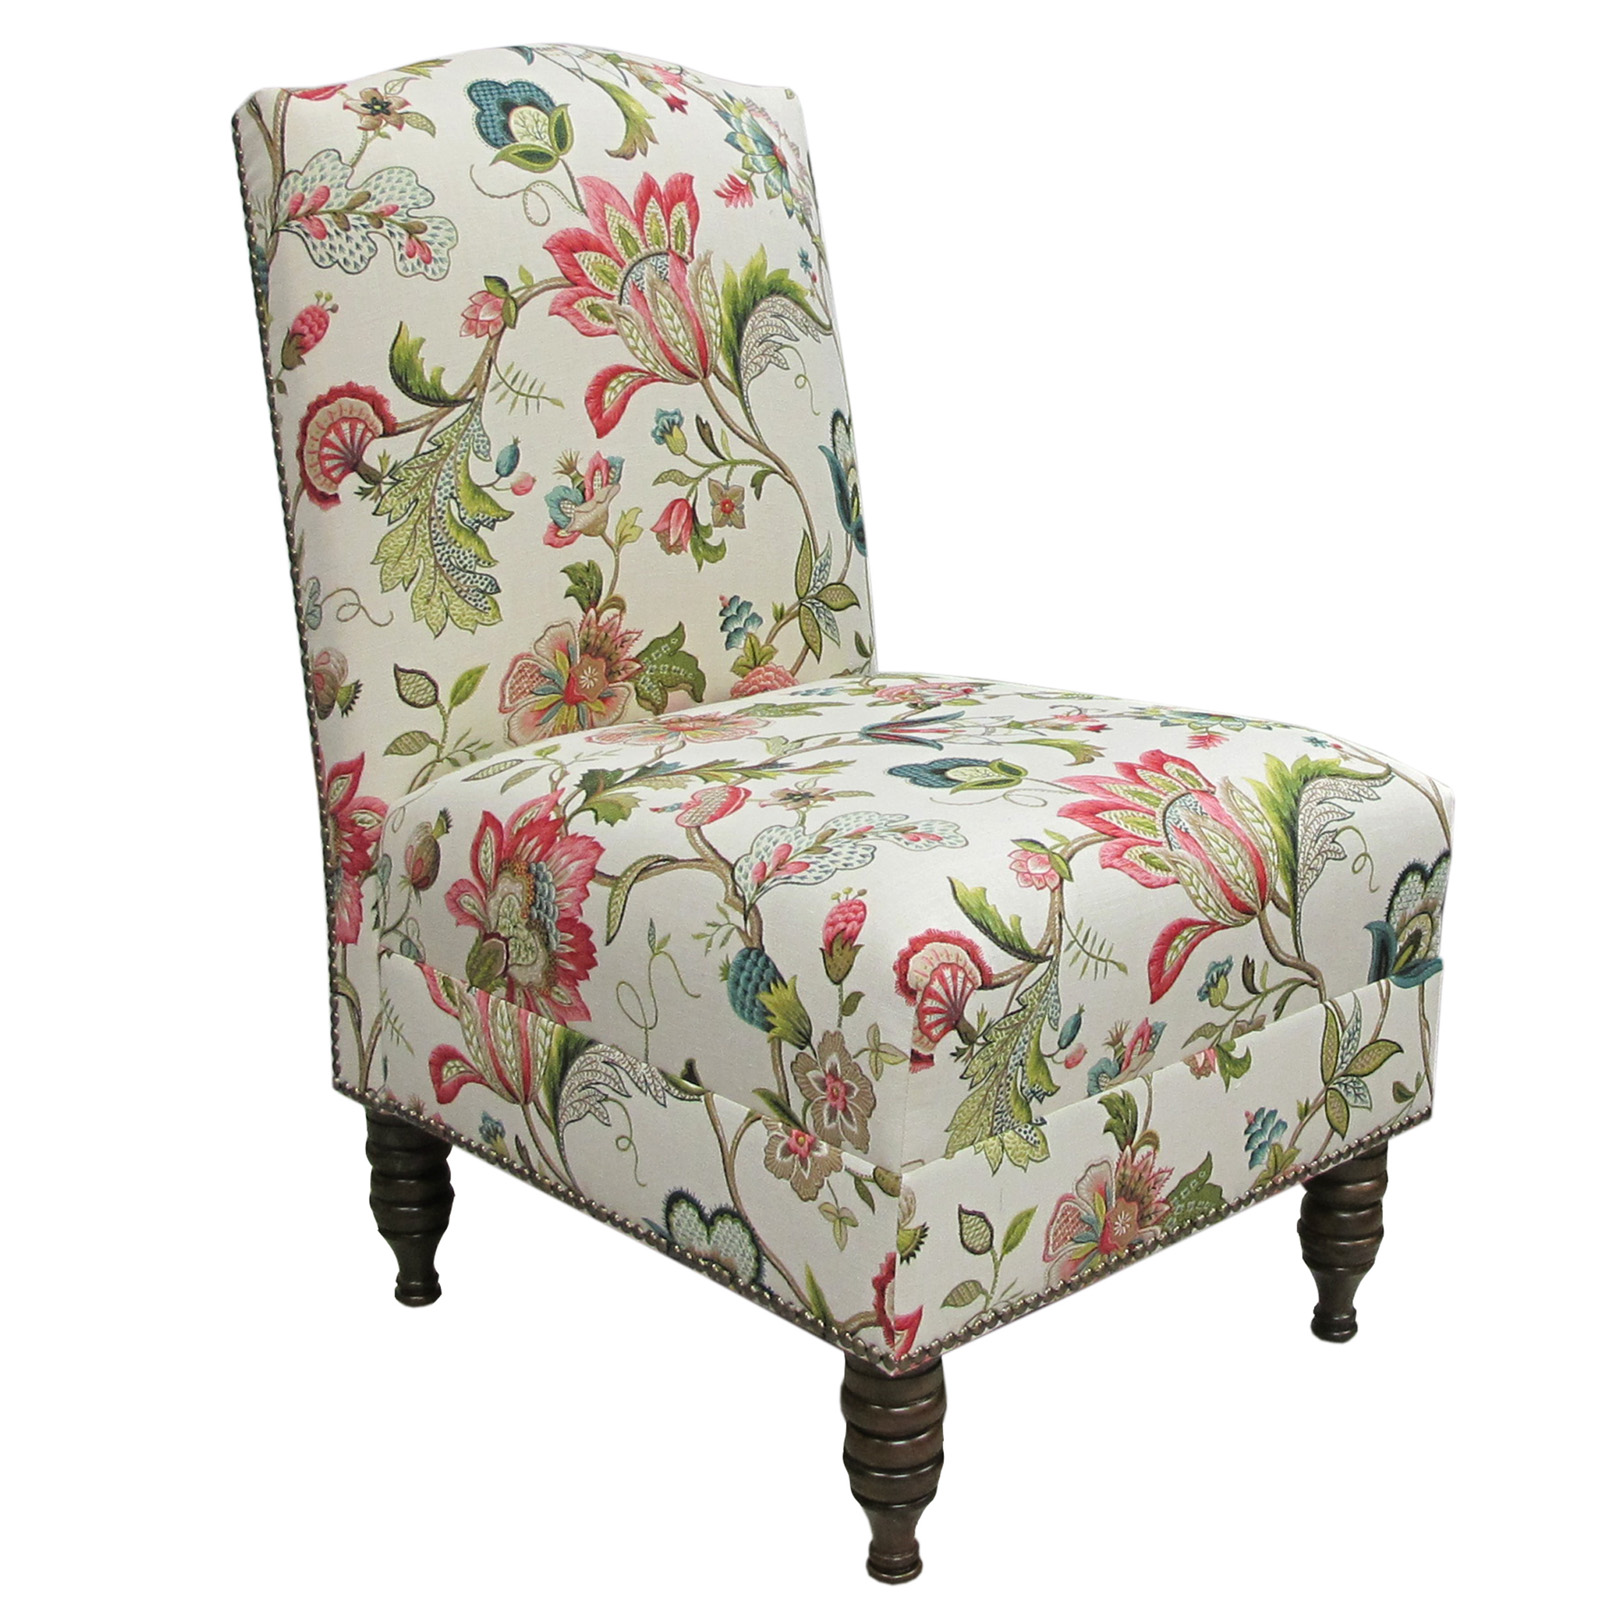 Brissac Jewel Armless Nail Button Chair | Hayneedle